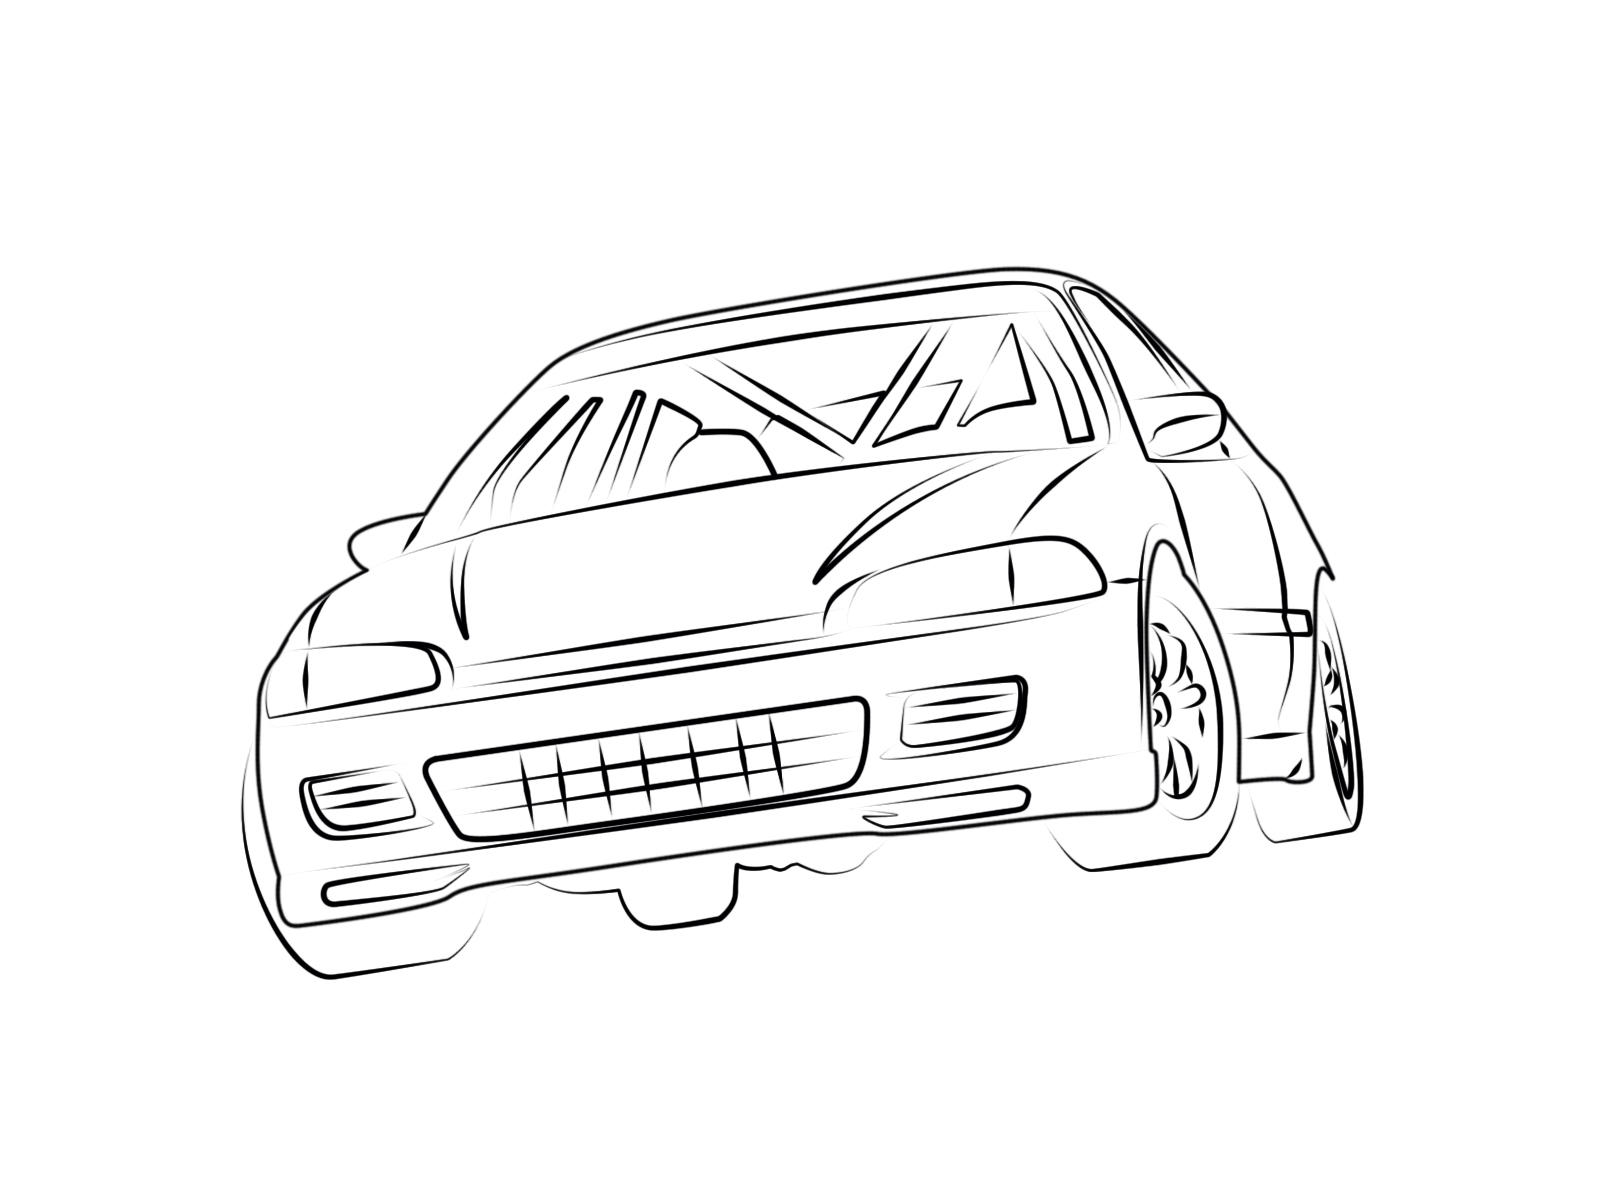 Honda Civic EG by GBoyd on DeviantArt